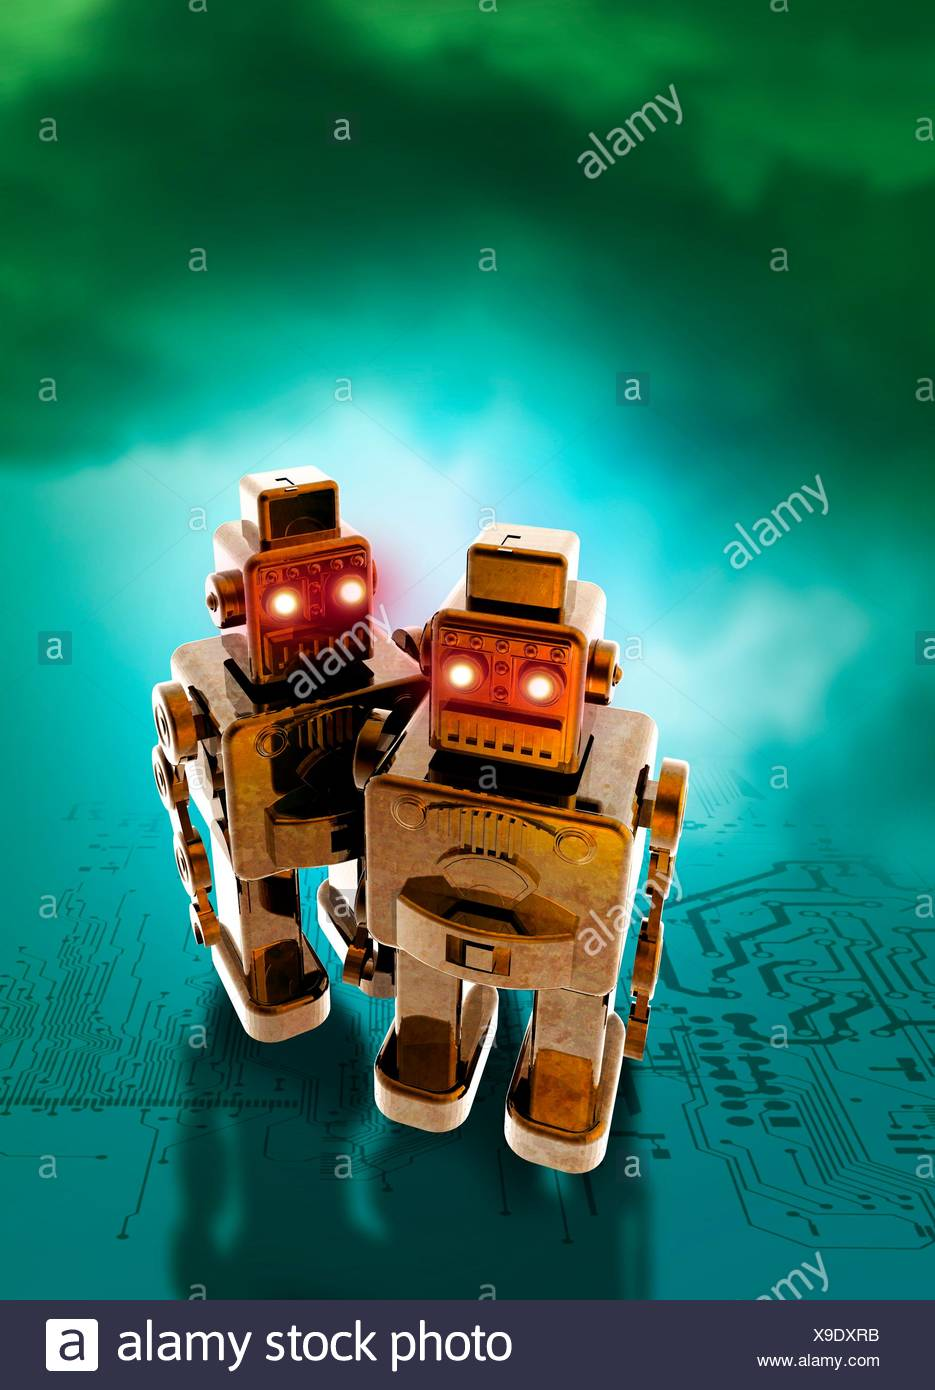 Robots And Circuit Board Illustration Stock Photo 281204207 Alamy